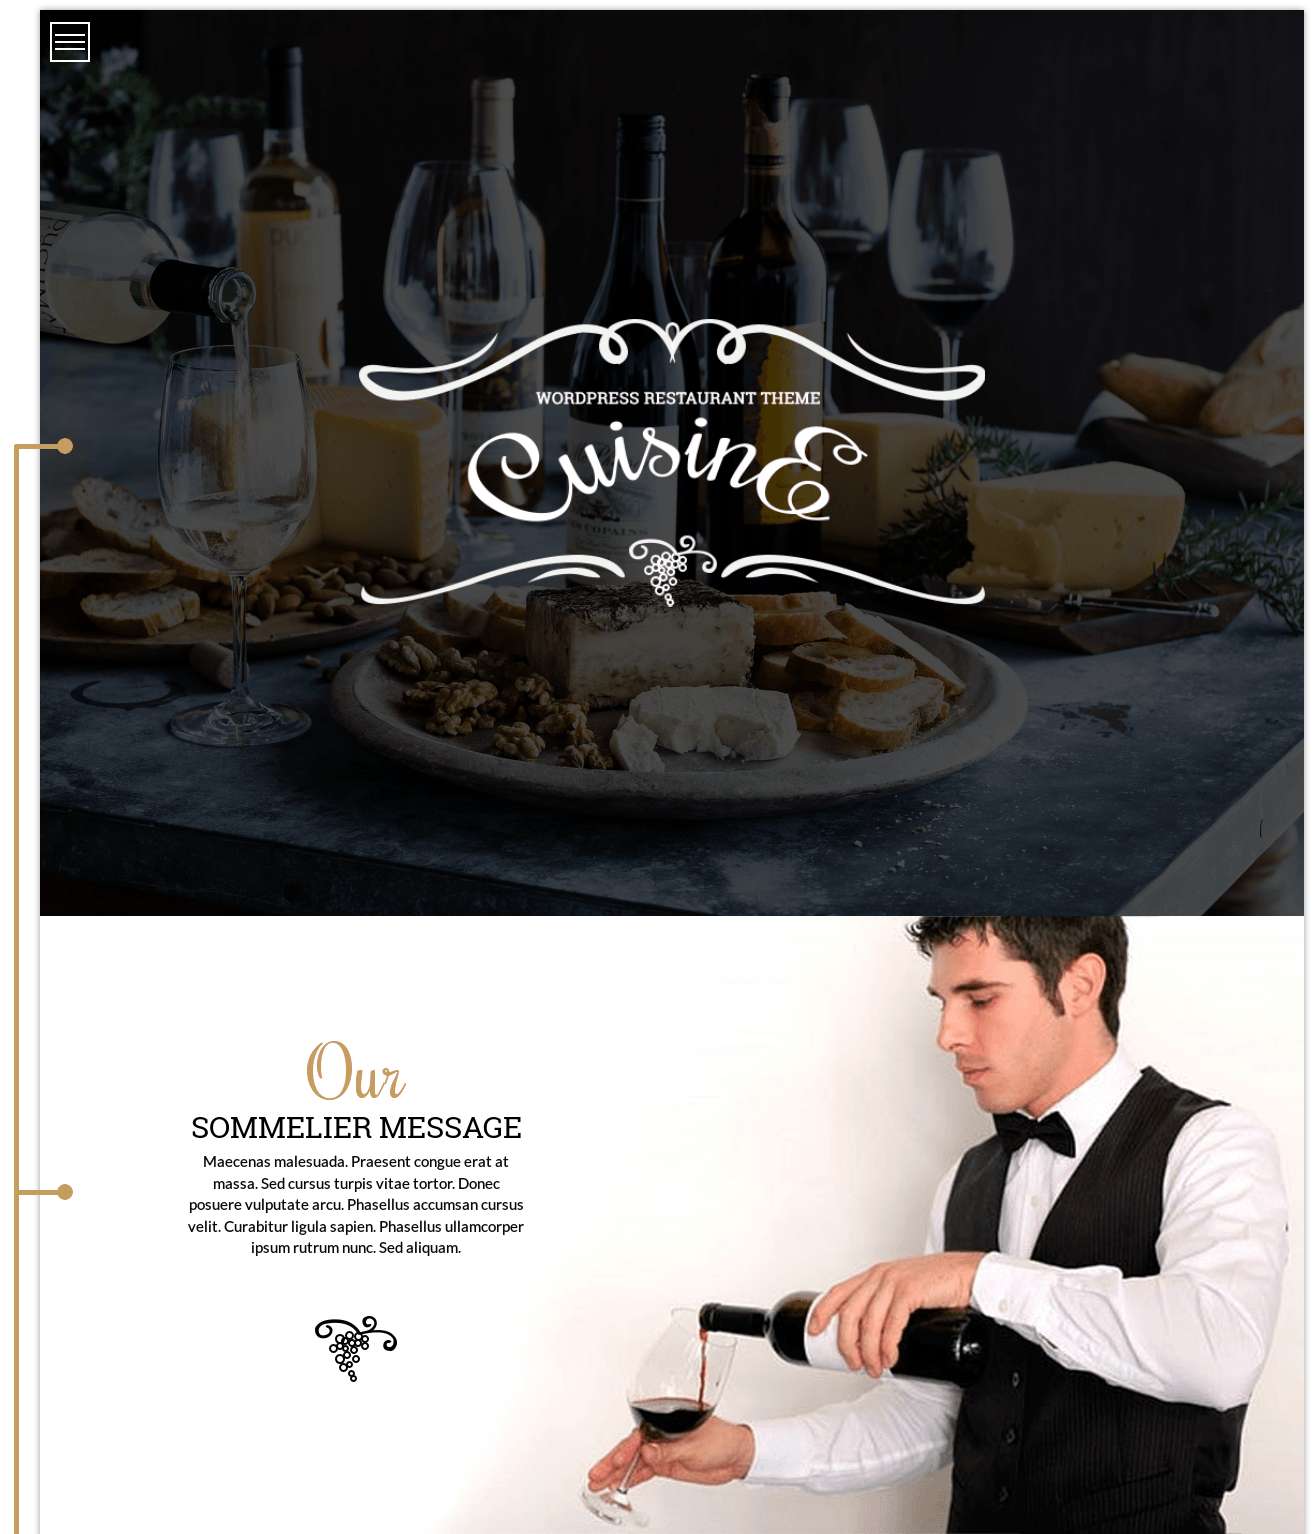 Cuisine - WordPress restaurant theme, header